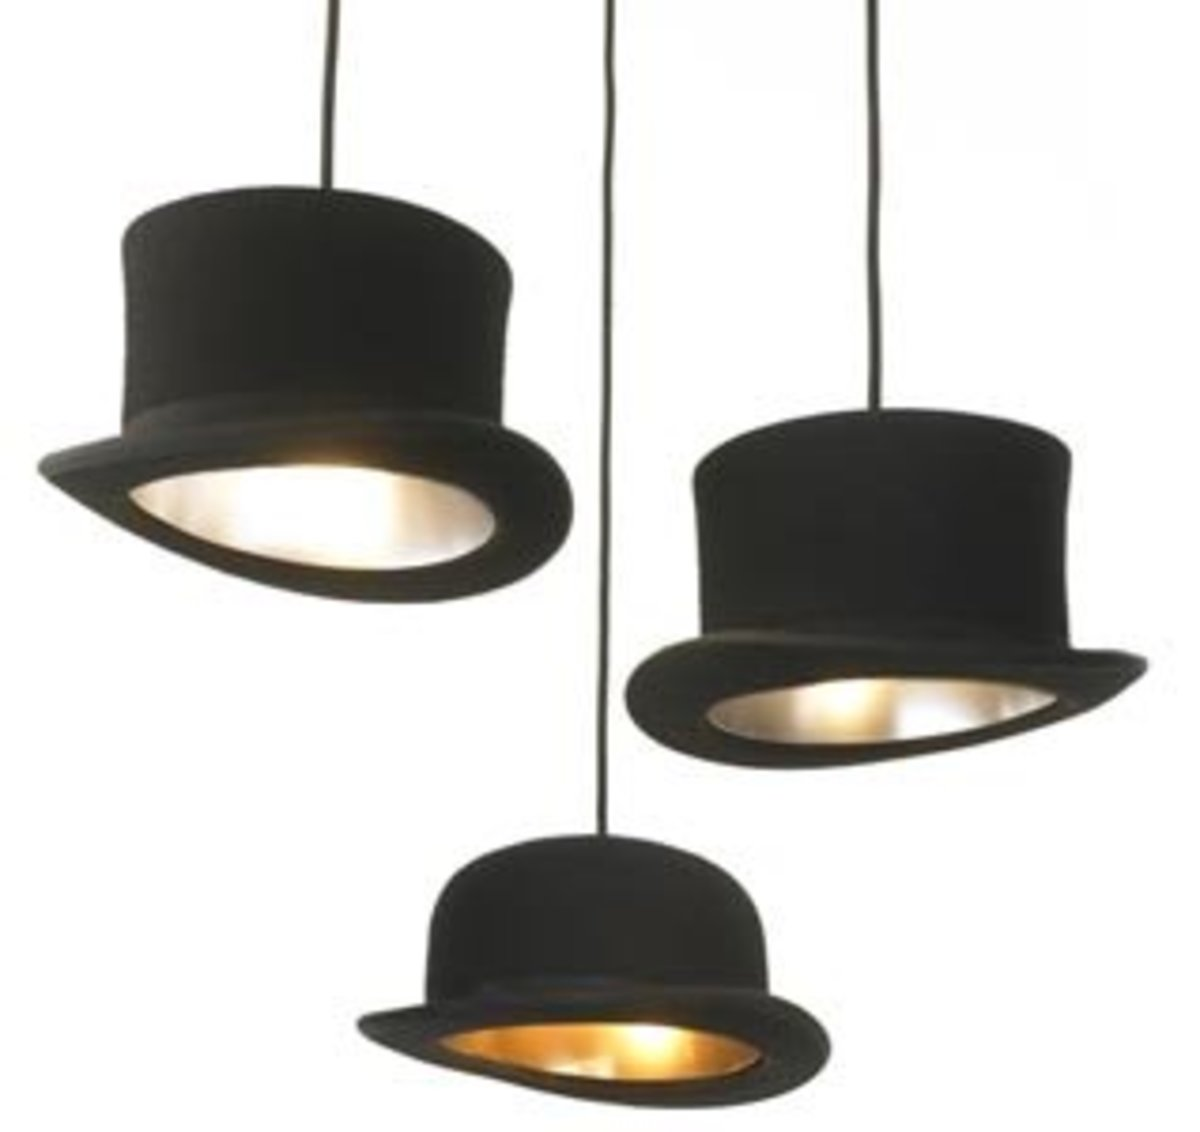 Diy pendant lights dengarden top hats whose insides are gilded make a whimsical and fun hanging light aloadofball Image collections